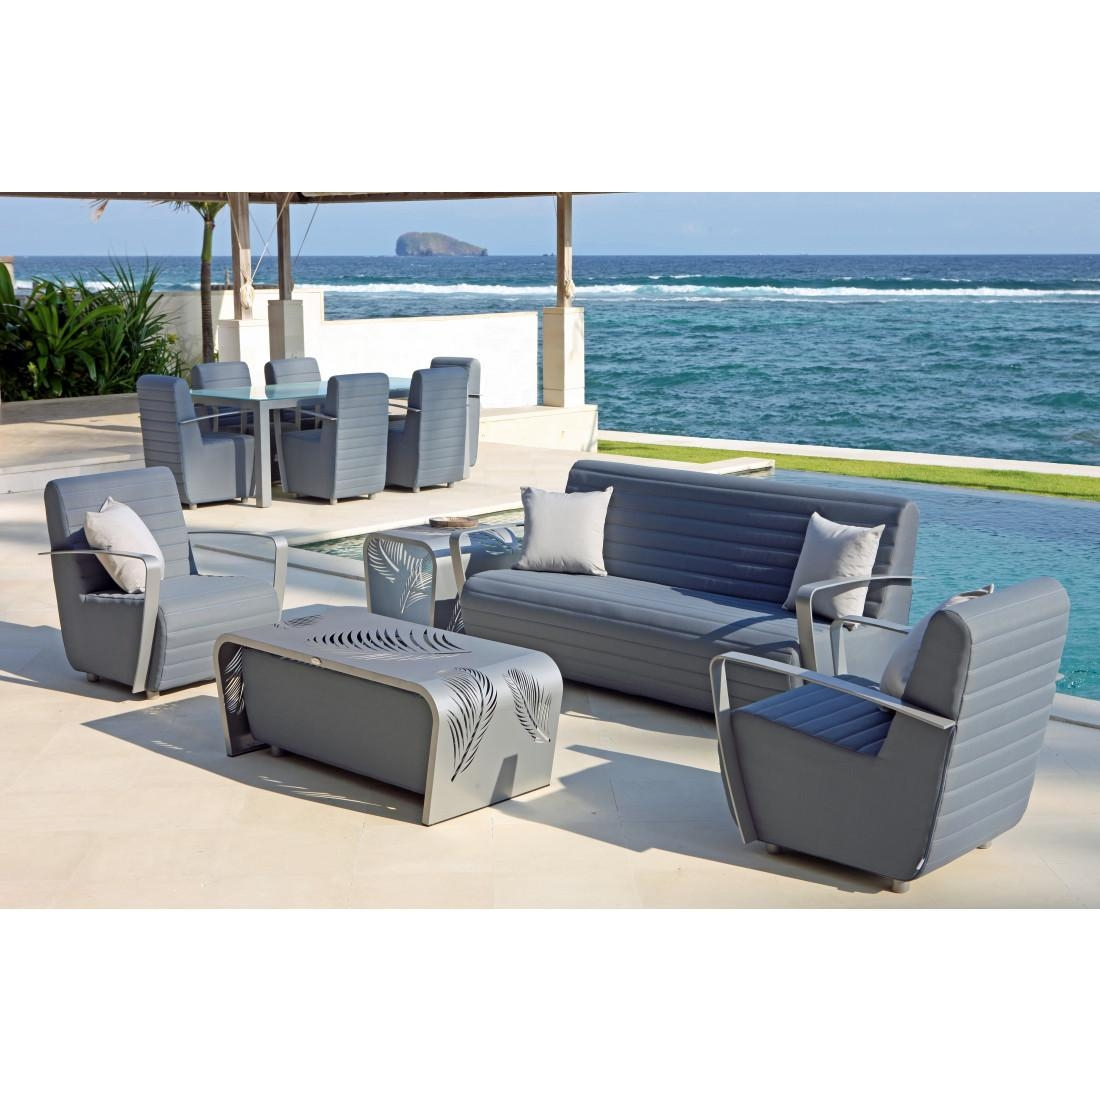 Outdoor Sofas – Axis Sofaskyline Regarding Skyline Sofas (Image 8 of 20)